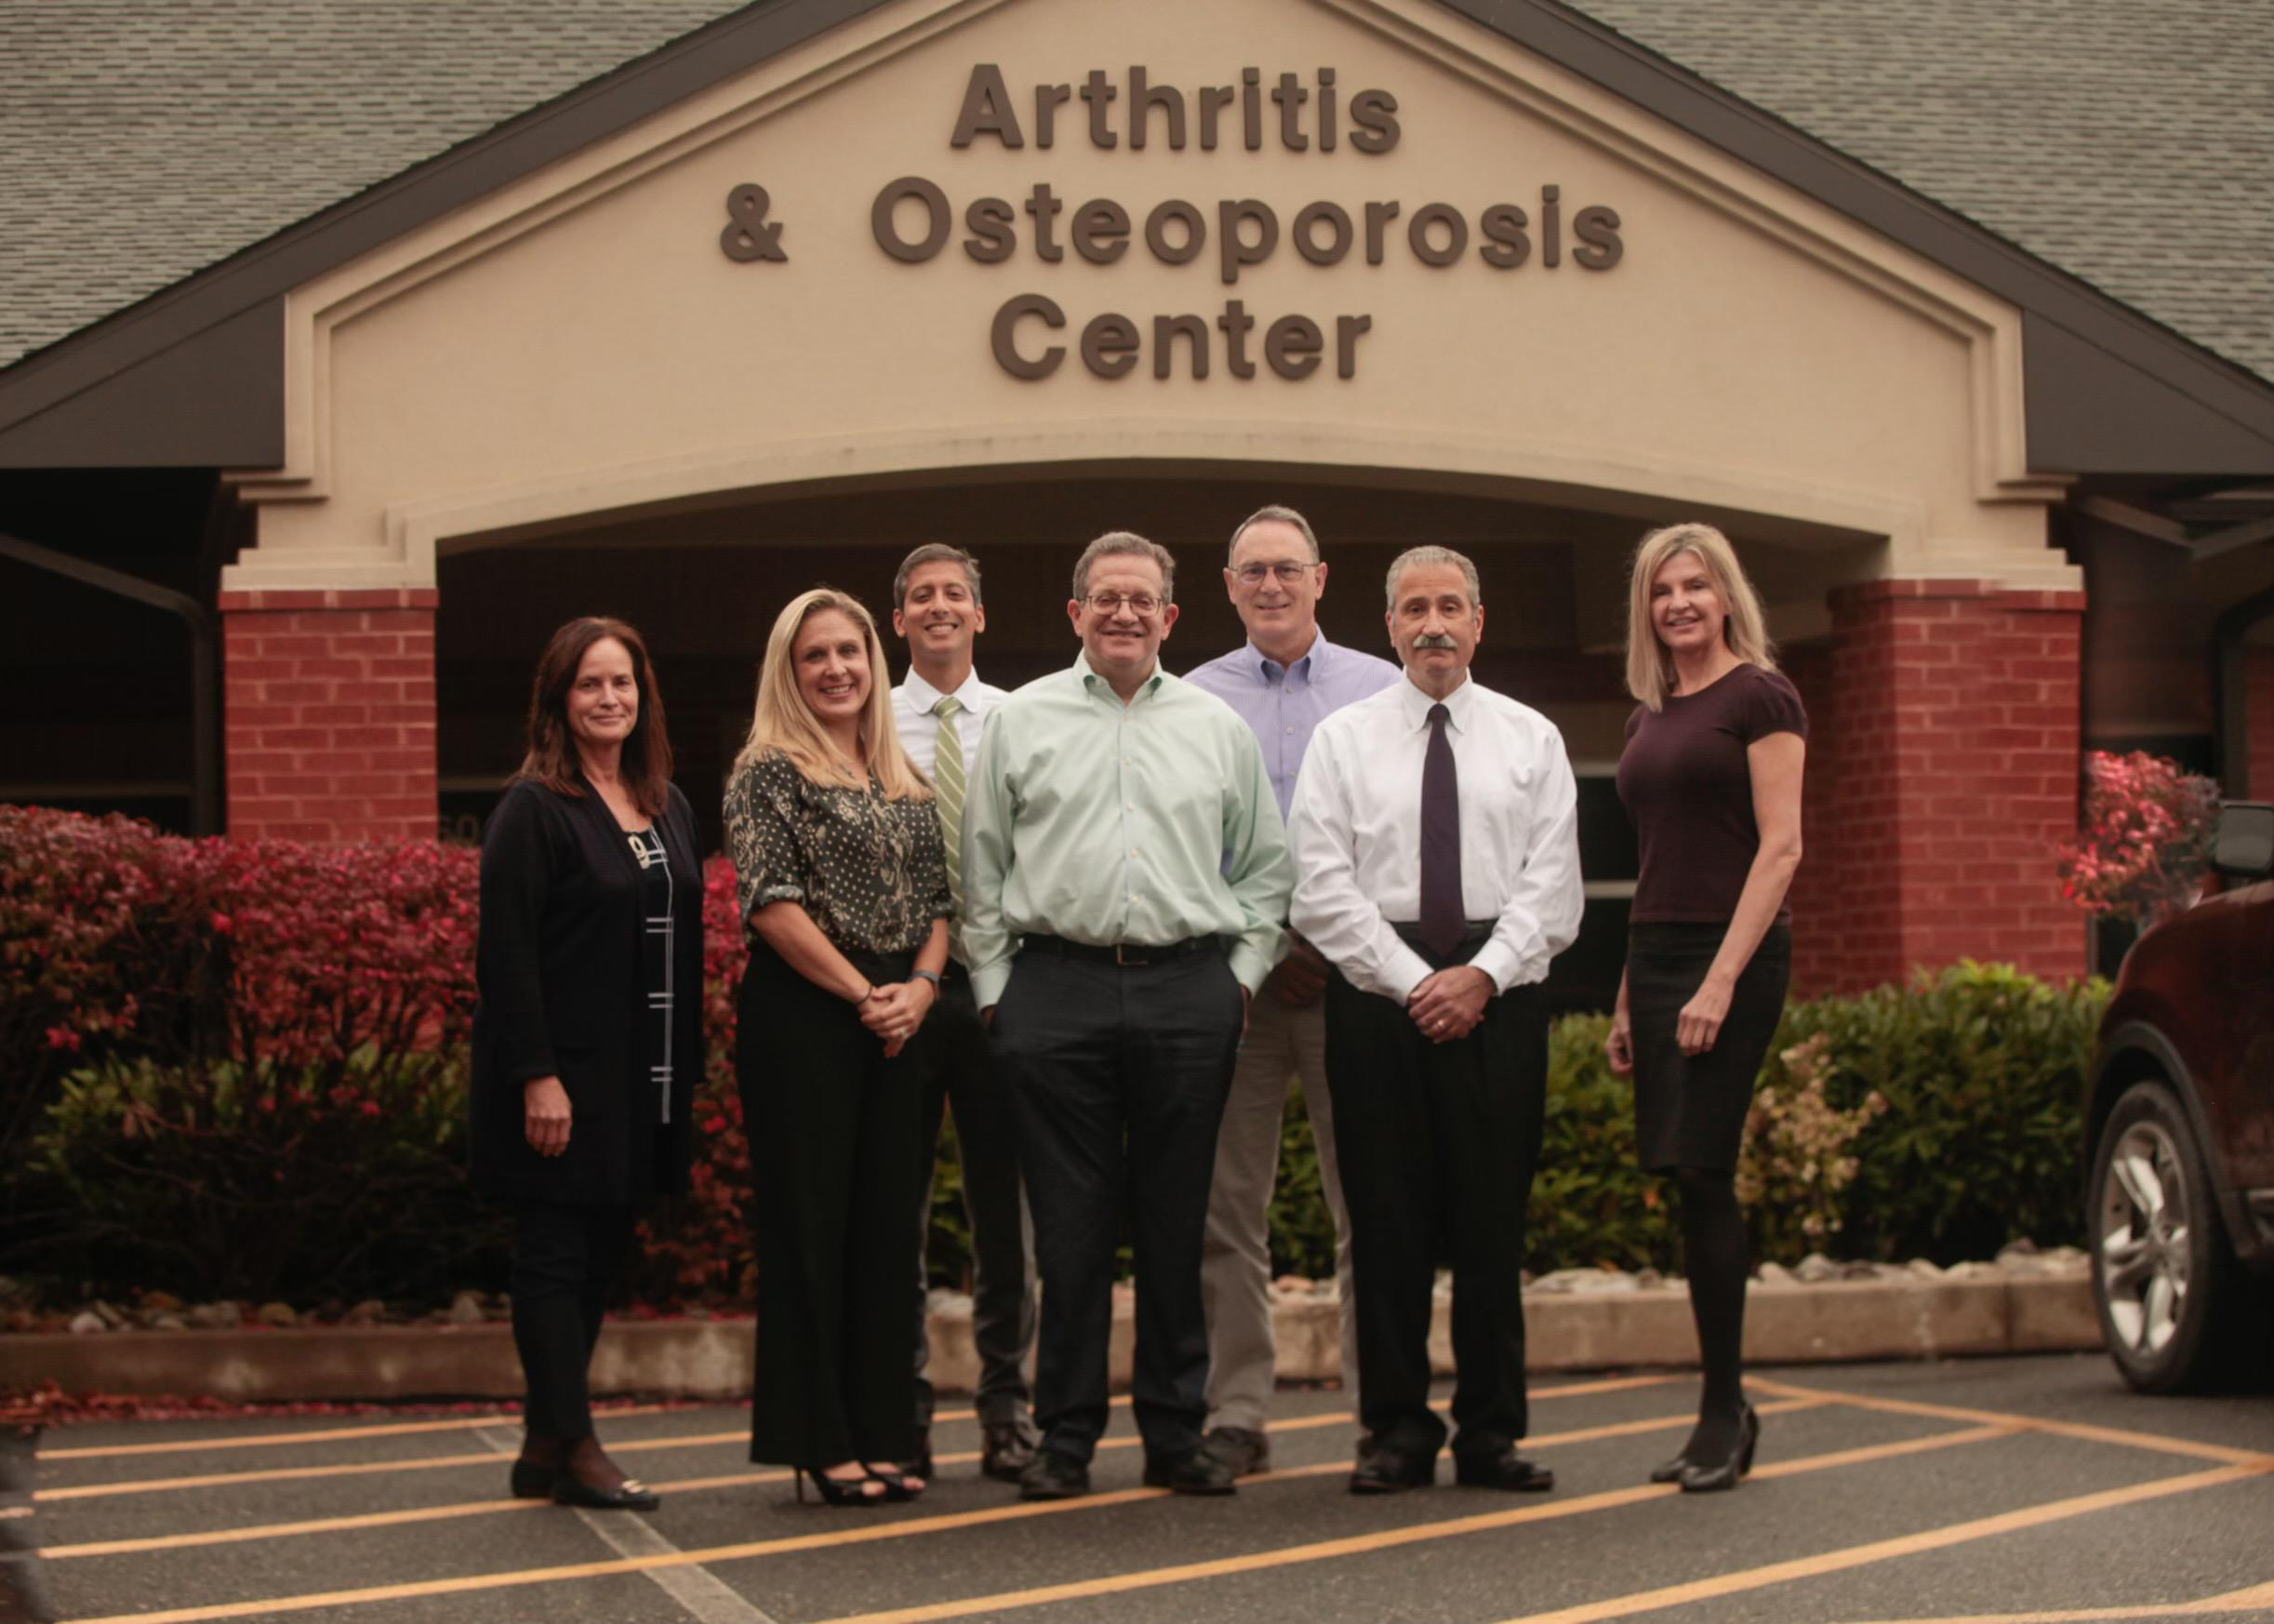 21++ Arthritis and osteoporosis center wyomissing pa viral